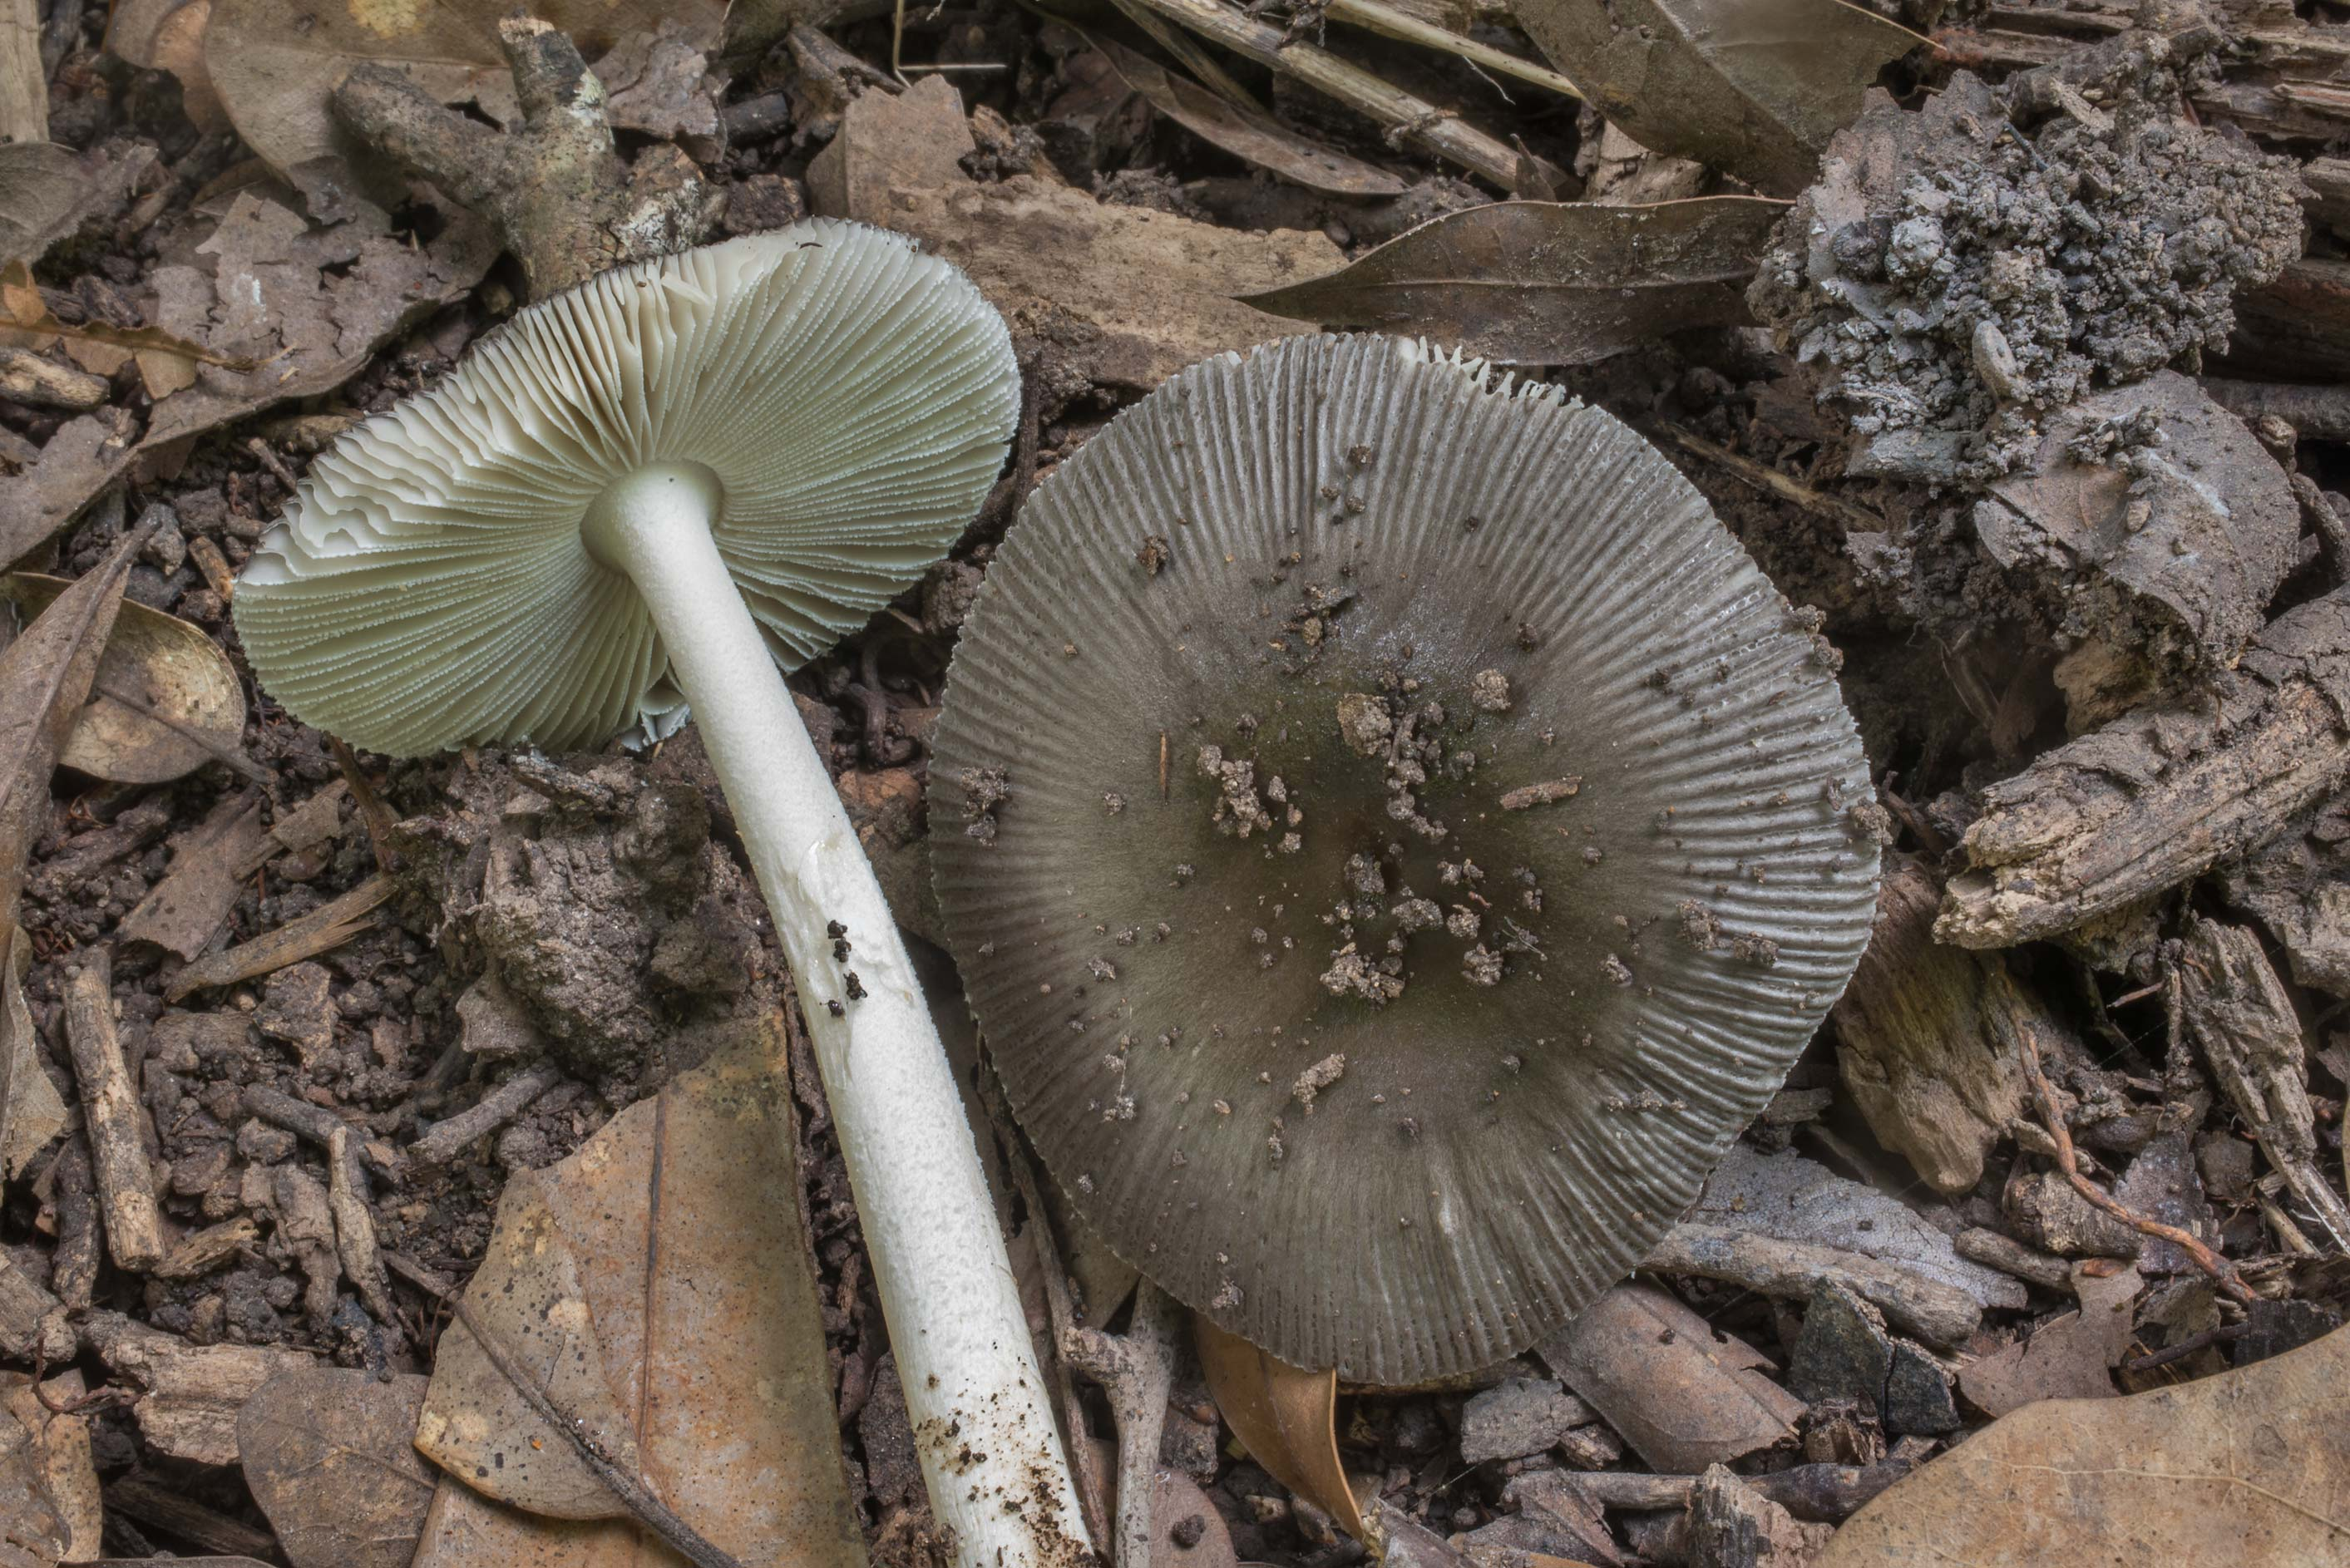 Grey grisette mushrooms (Amanita vaginata) in Lick Creek Park. College Station, Texas